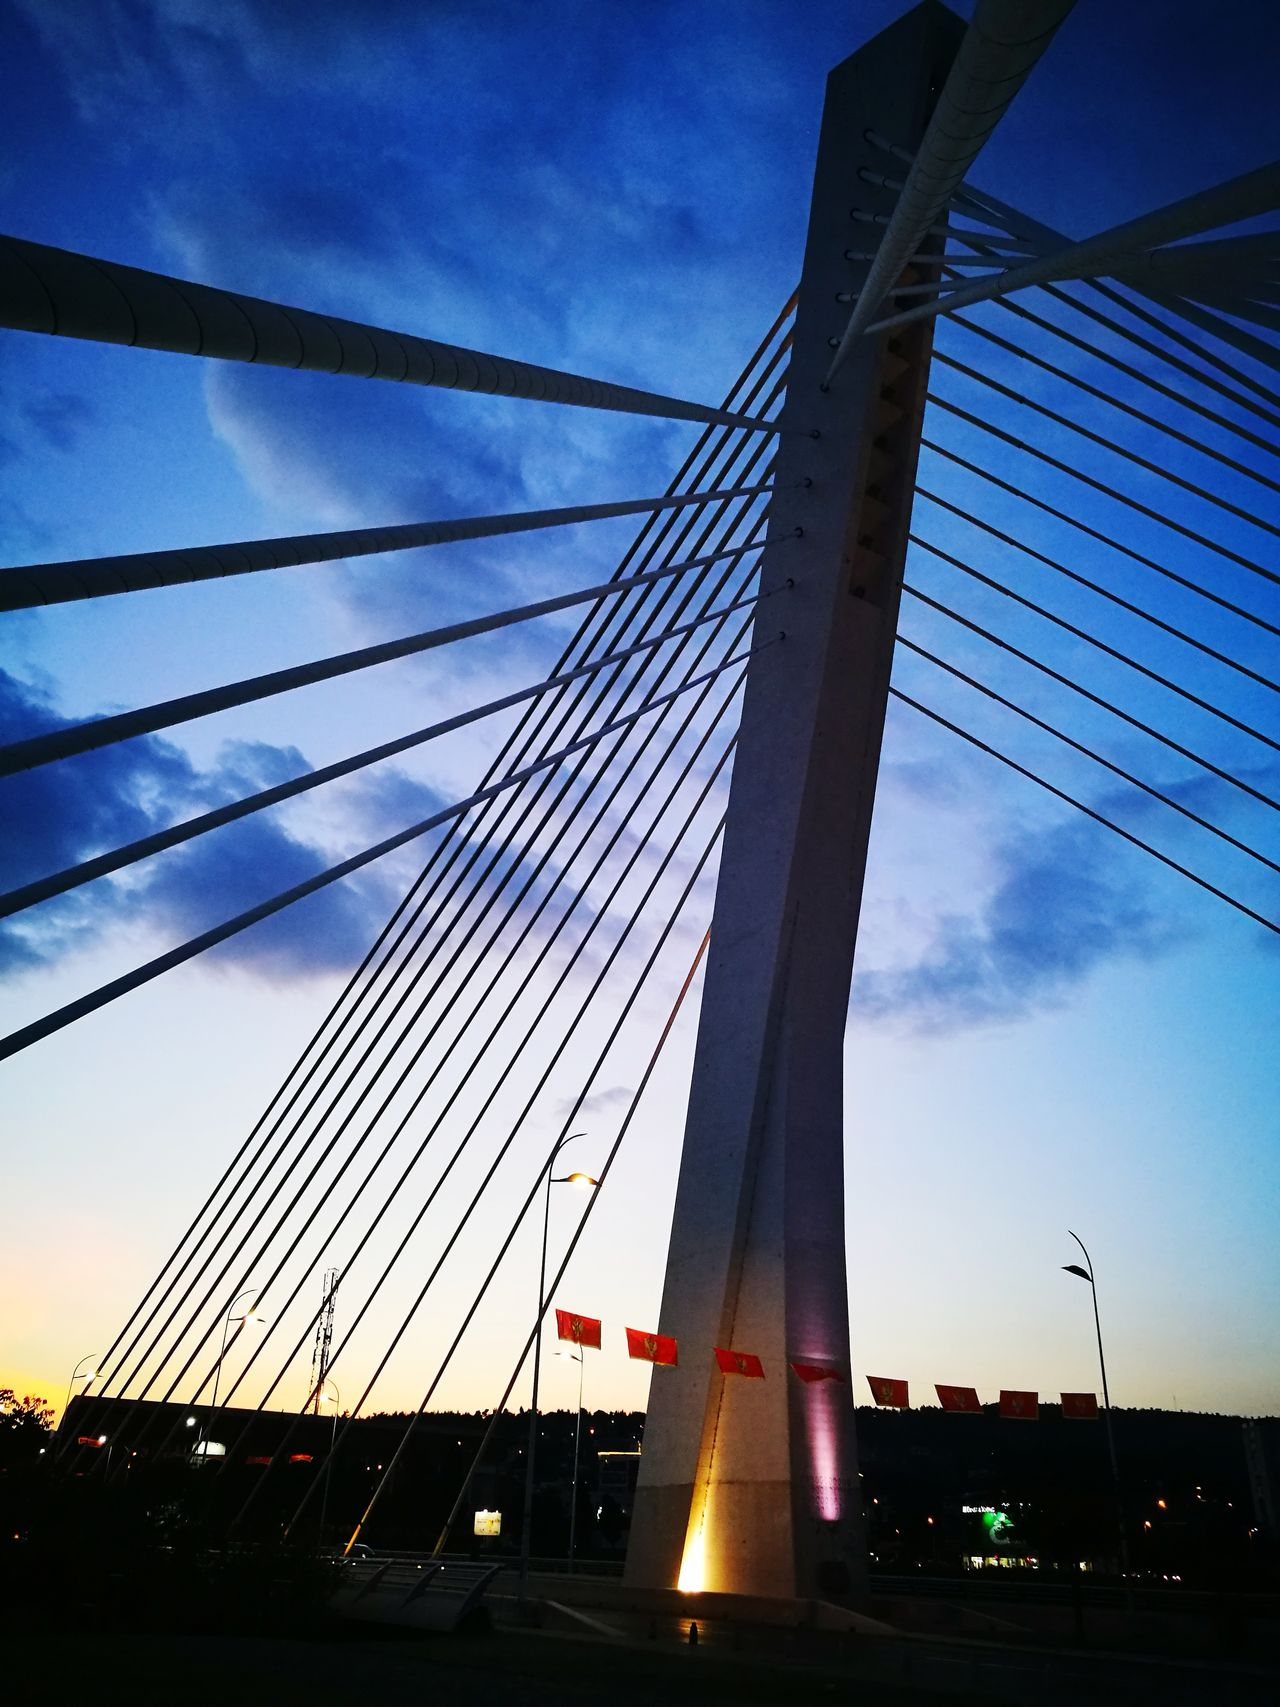 Bridge - Man Made Structure Suspension Bridge Connection Sky Architecture Built Structure Transportation City Outdoors Cloud - Sky Travel Destinations No People Sunset Low Angle View Cable Steel Skyscraper Night Illuminated Golf Club Nightshot Landscape Cityscape Podgorica Montenegro The Architect - 2017 EyeEm Awards